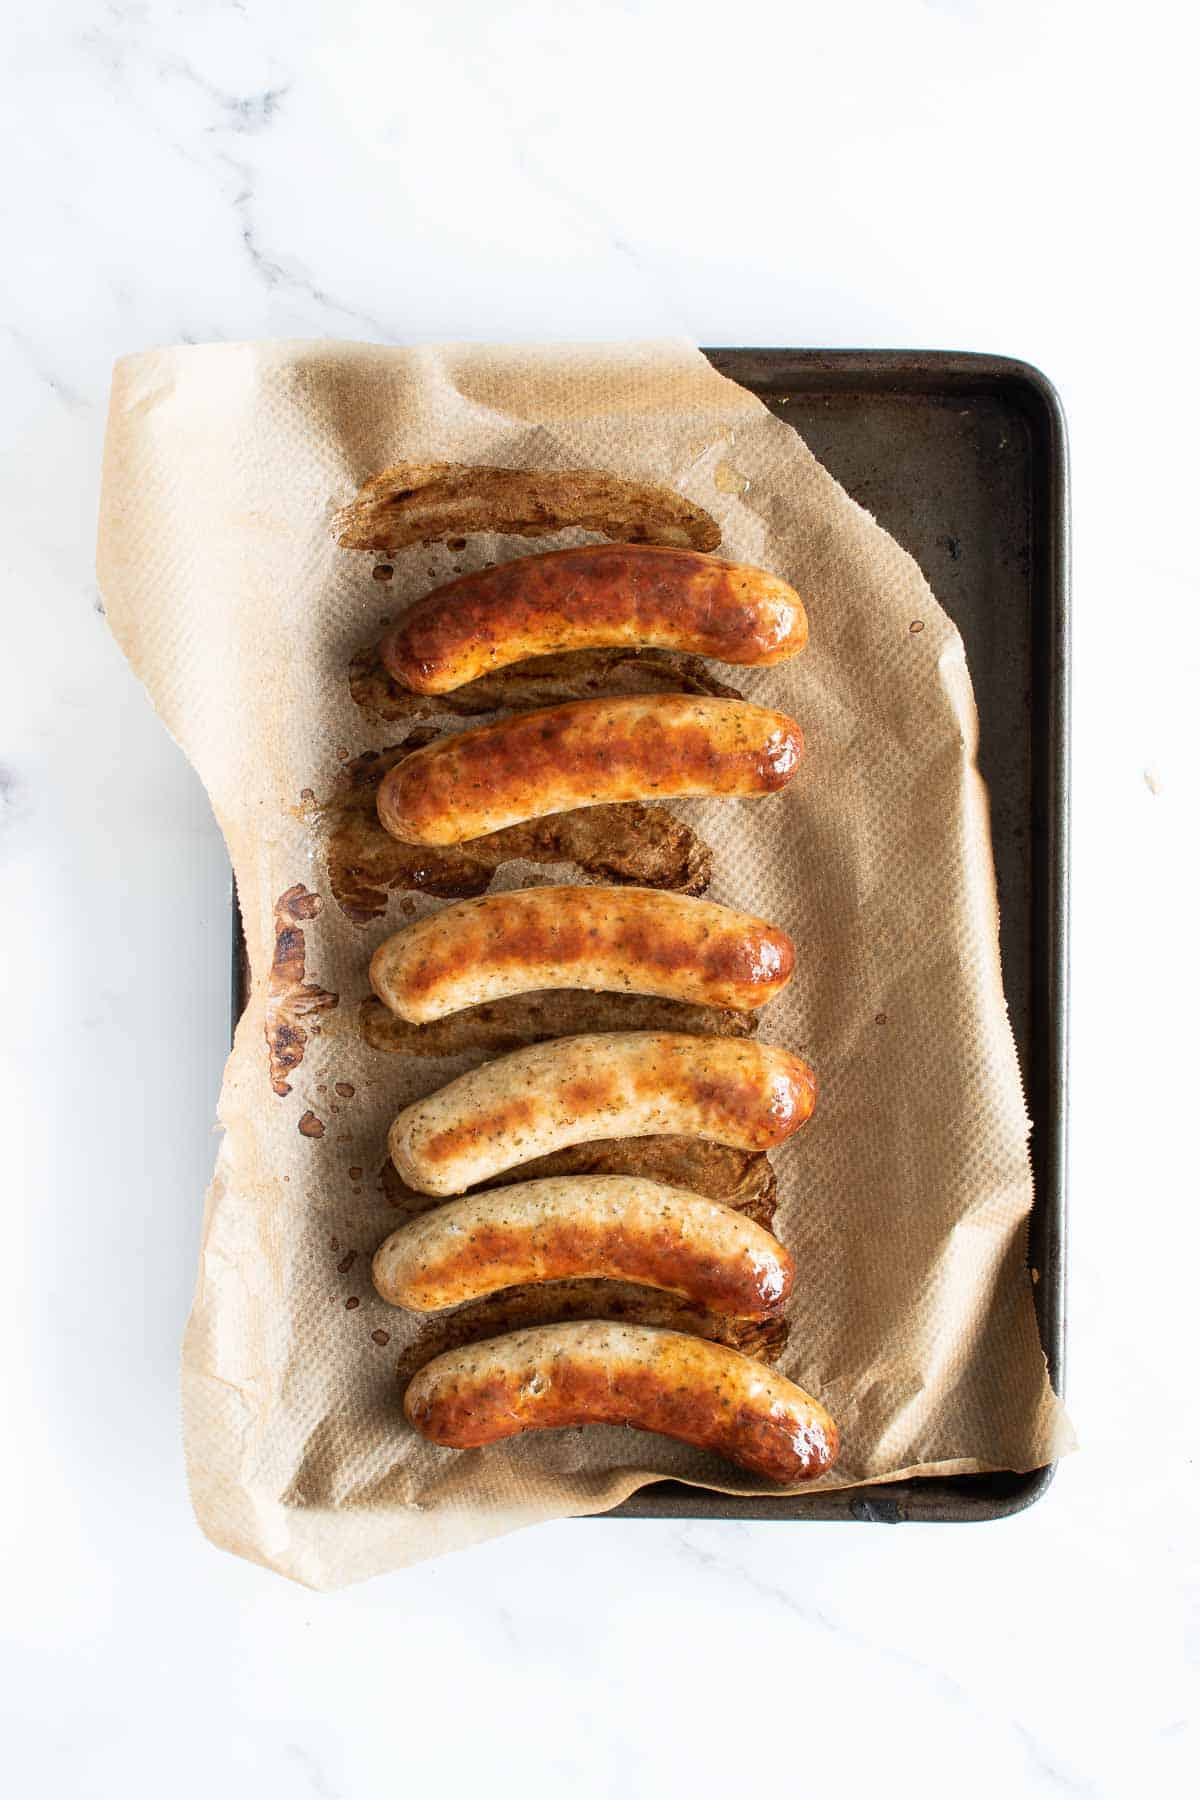 6 cooked bratwurst sausages on a baking sheet.